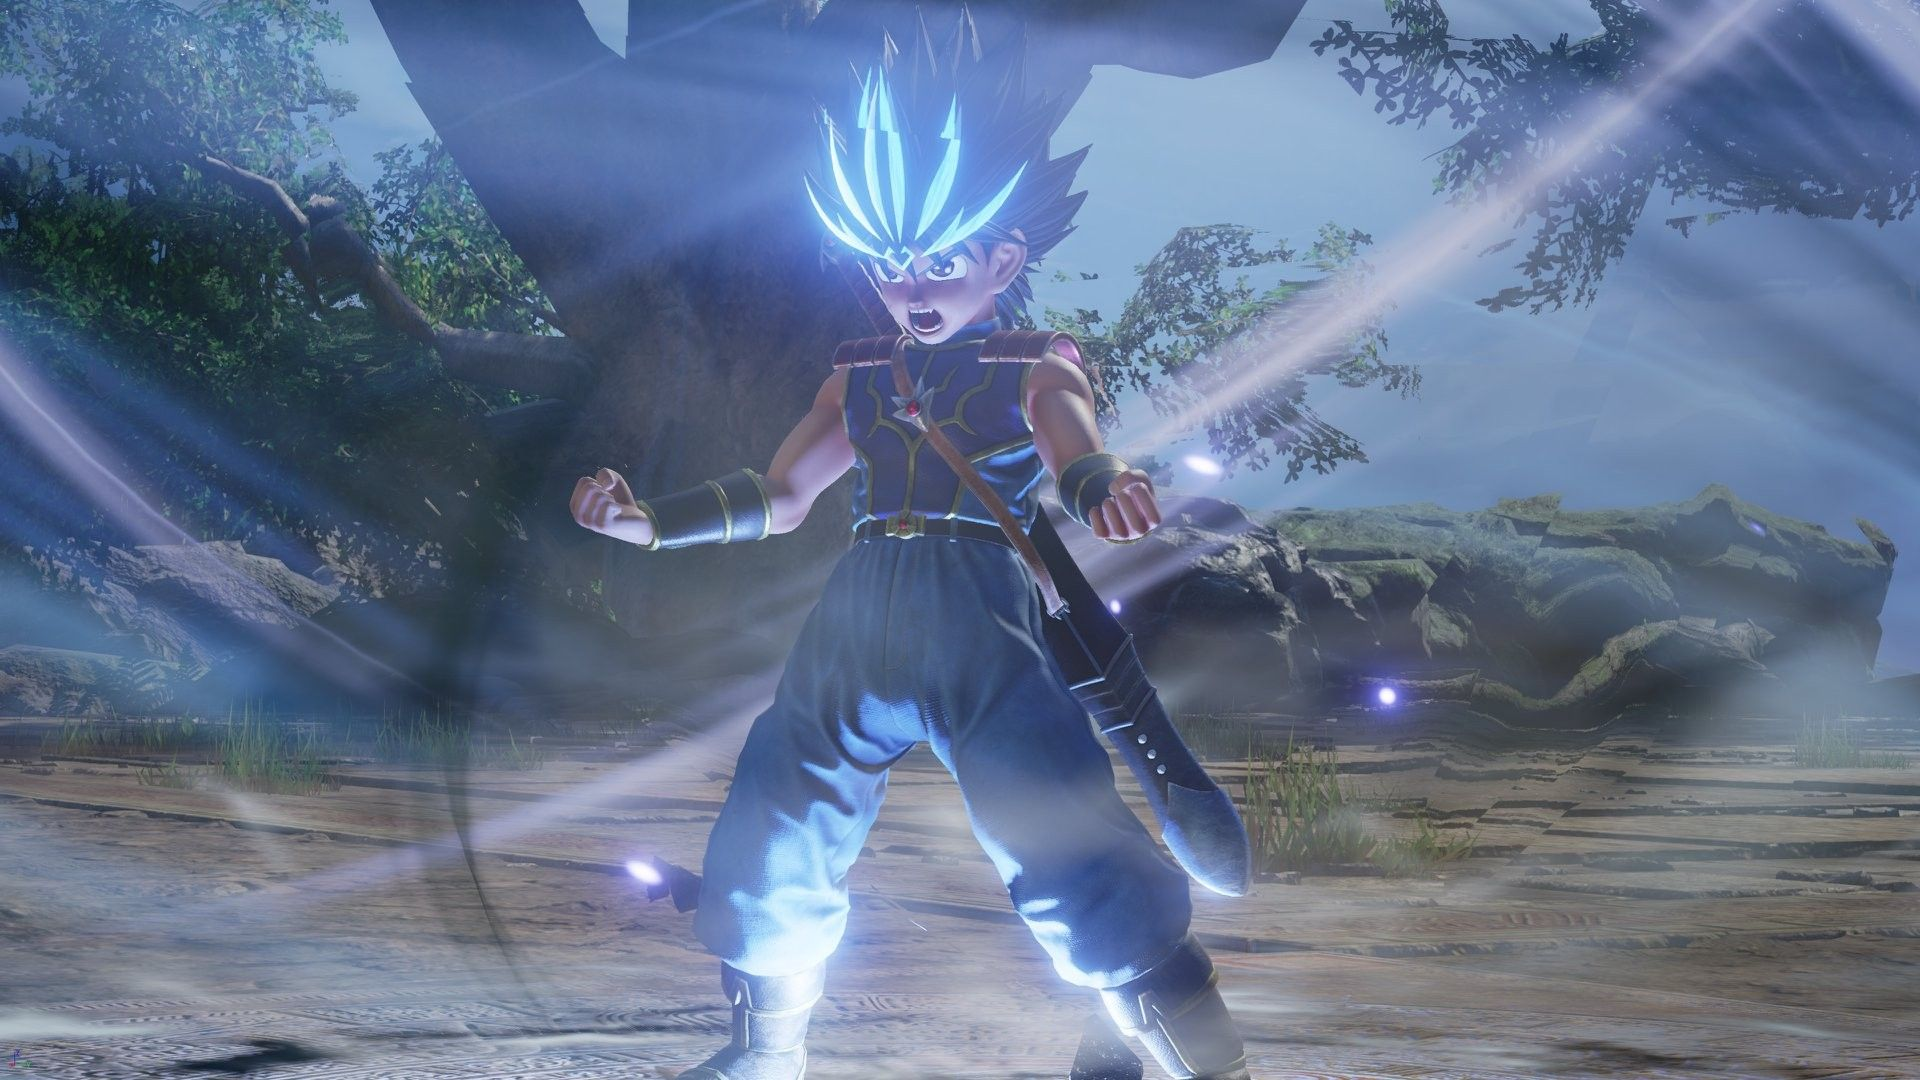 Pin By Gohan Z On Jump Force Xbox One Cyber Sleuth Dark Pictures